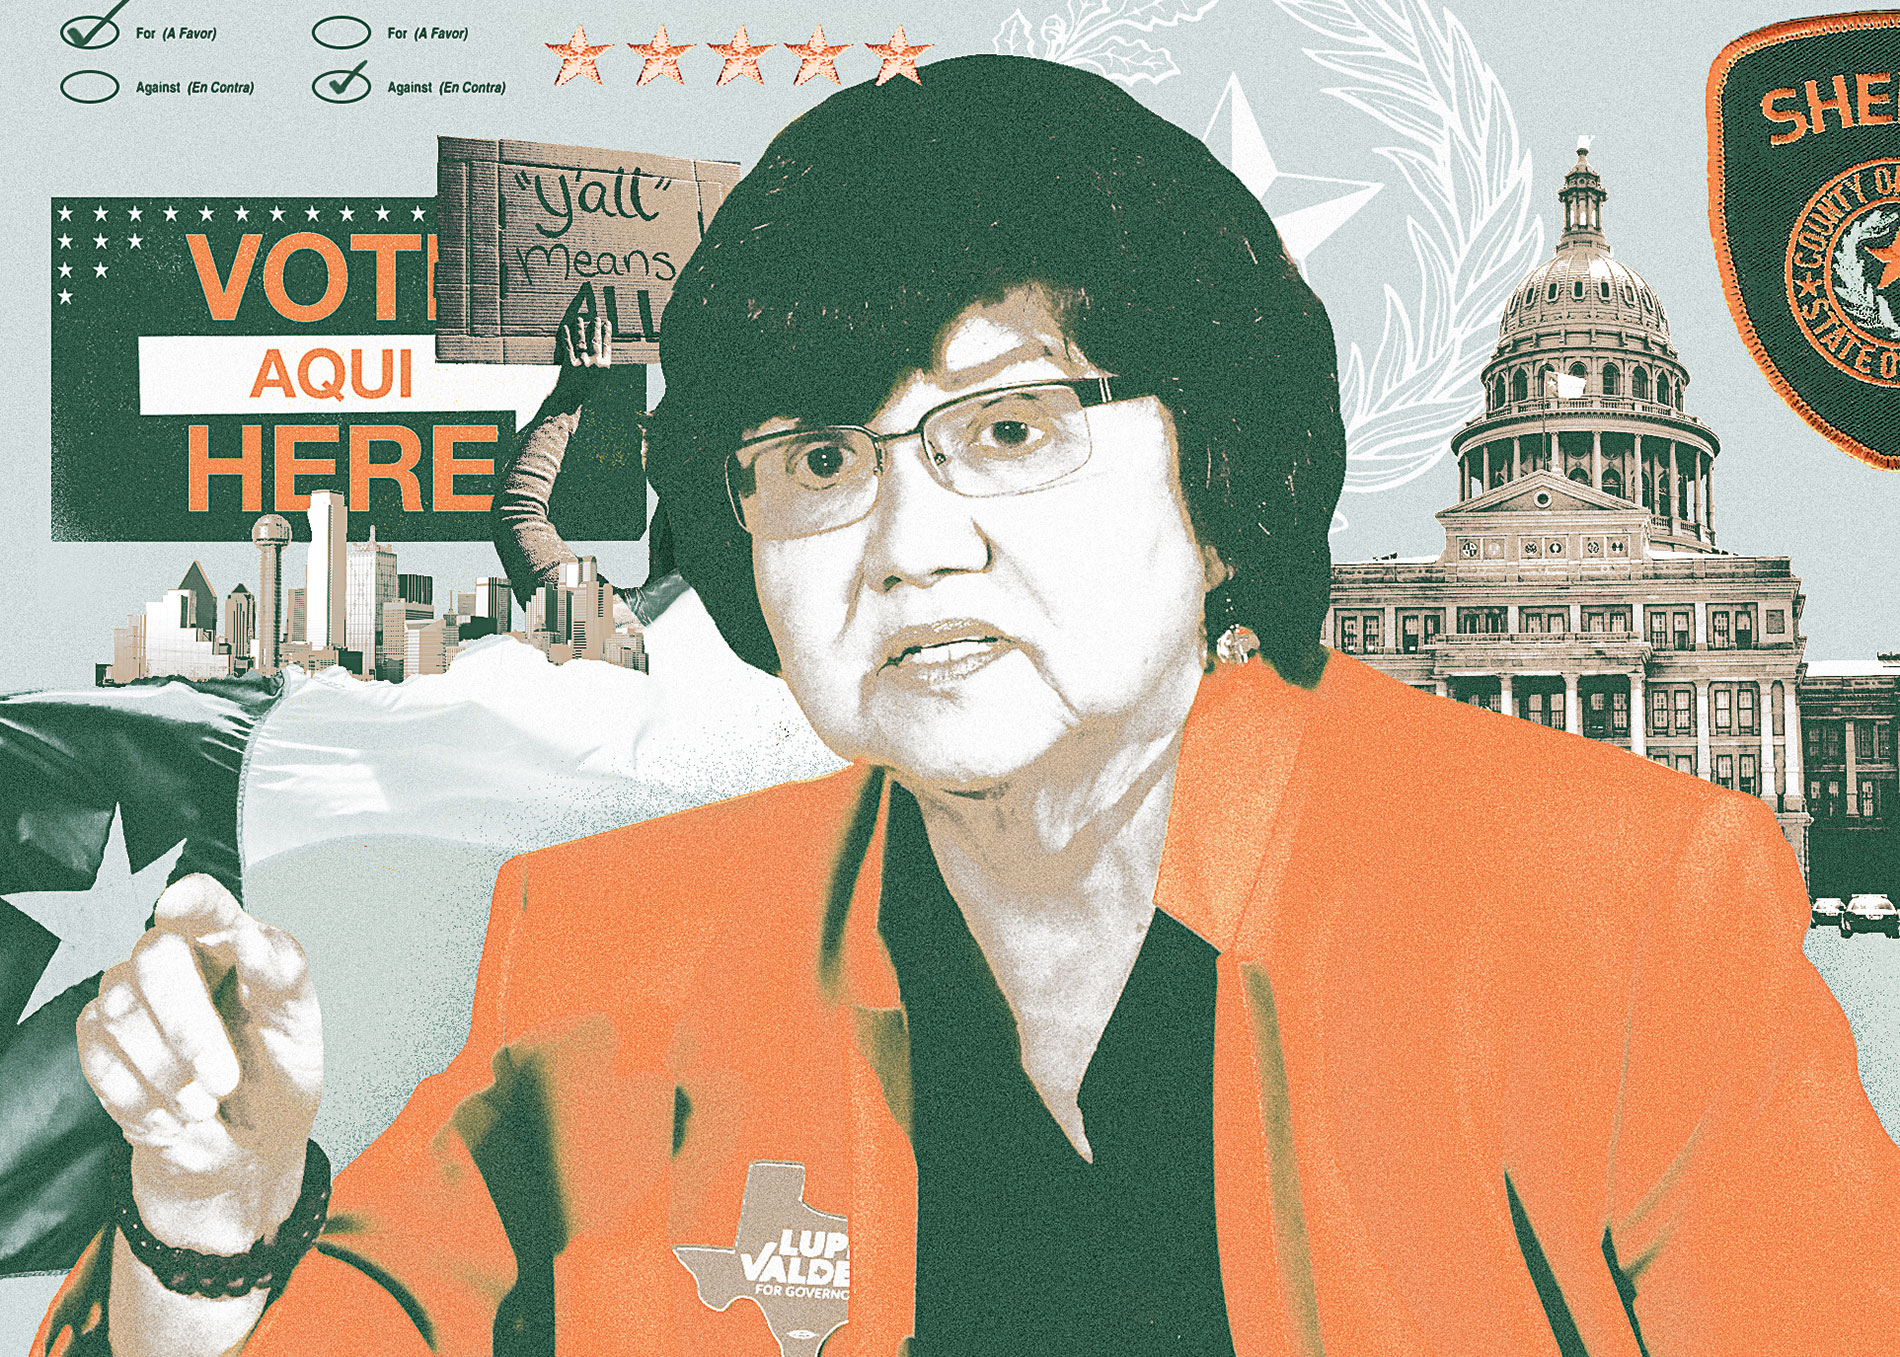 Just How Doomed Is Lupe Valdez? - Texas Monthly